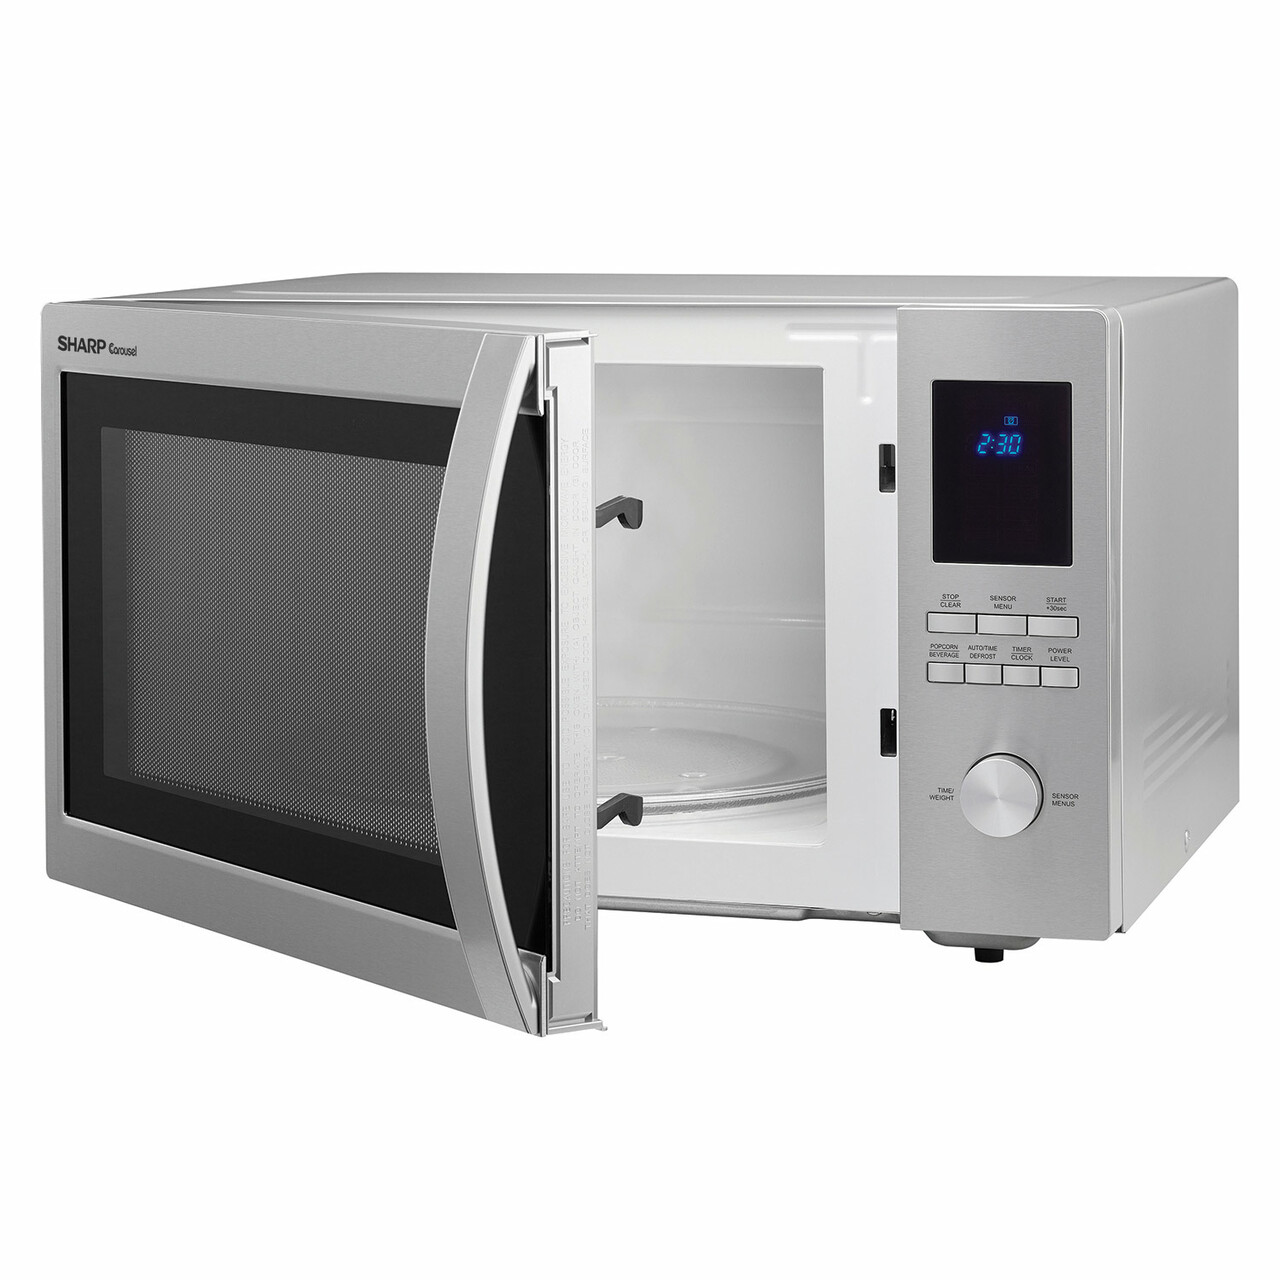 1.6 cu. ft. Sharp Stainless Steel Carousel Countertop Microwave (SMC1655BS) – left angle view with door open